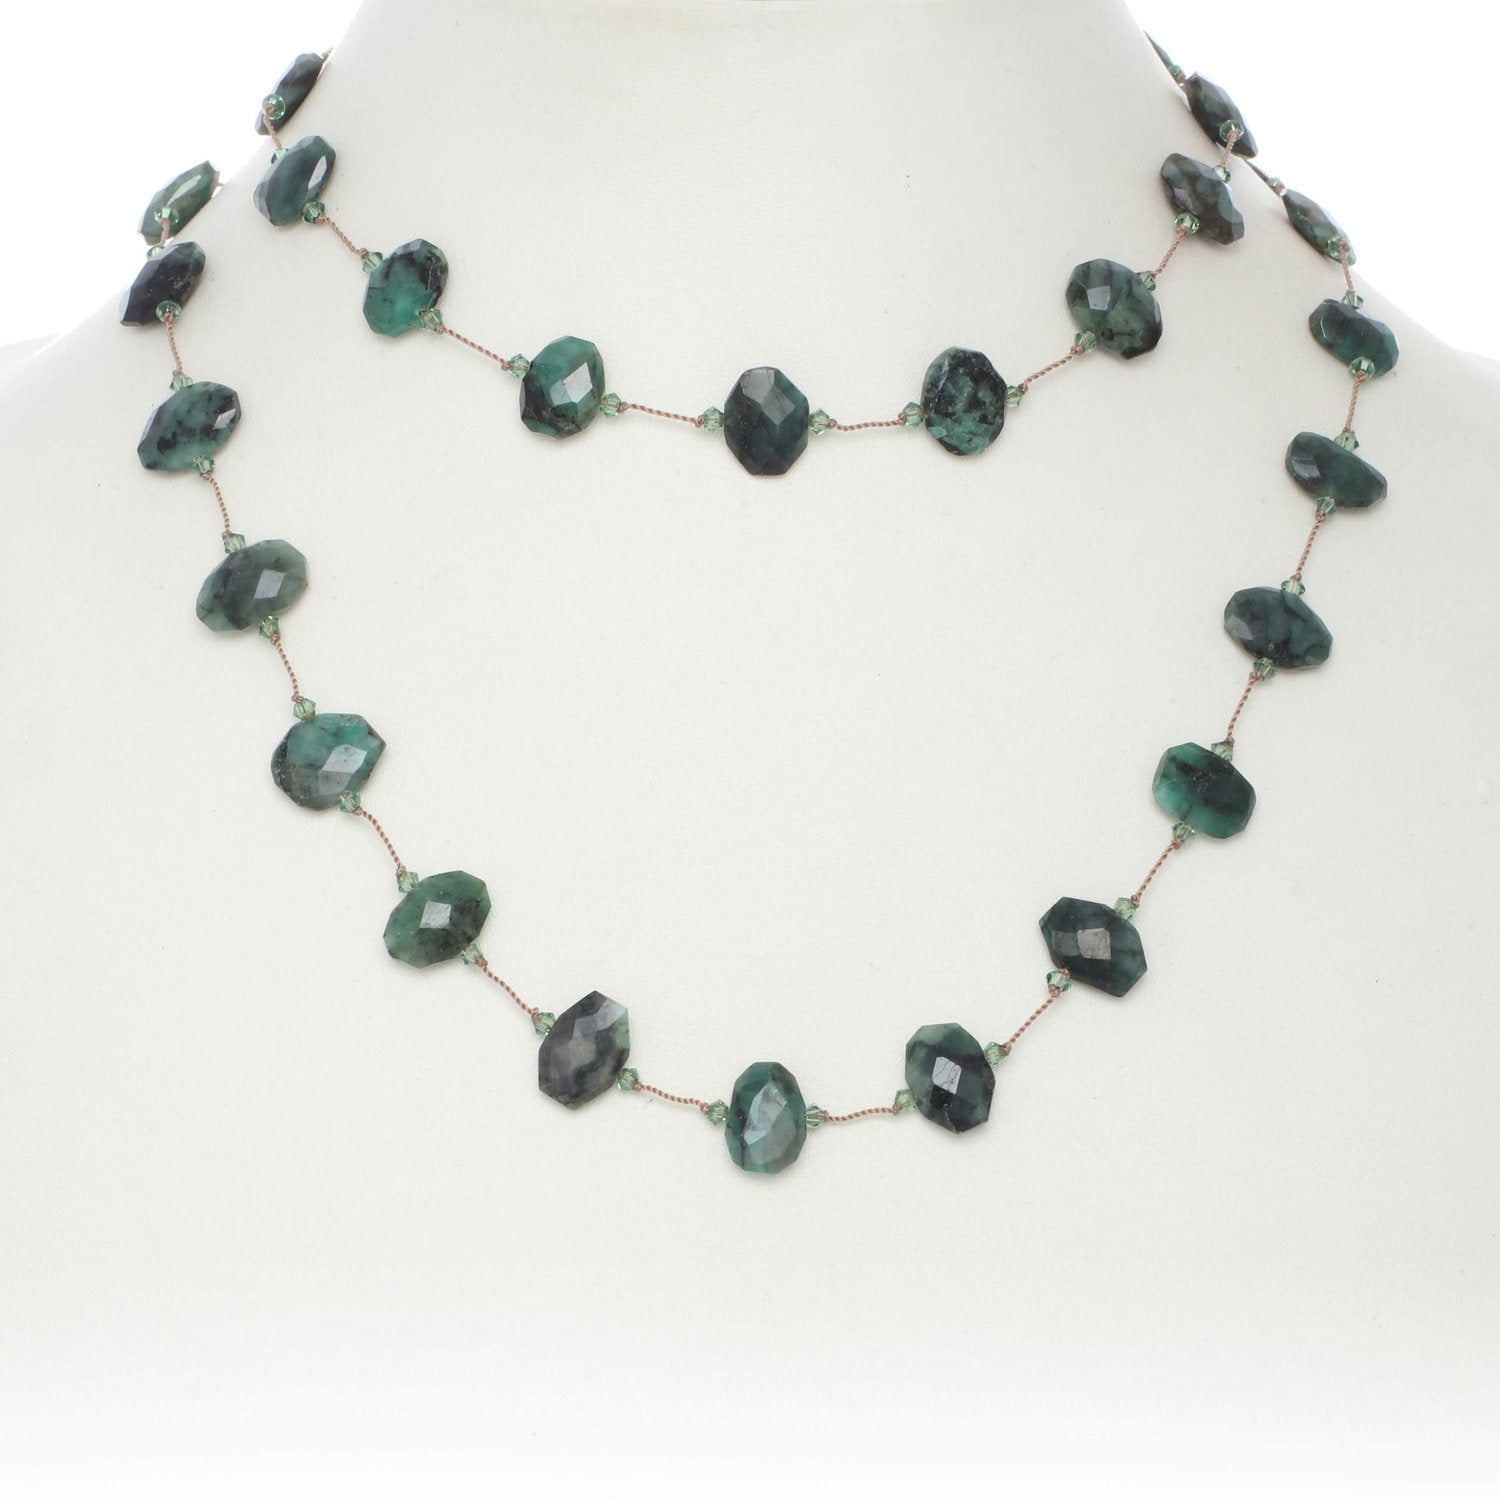 Faceted Raw Emerald Necklace, 35 Inches, Sterling Silver